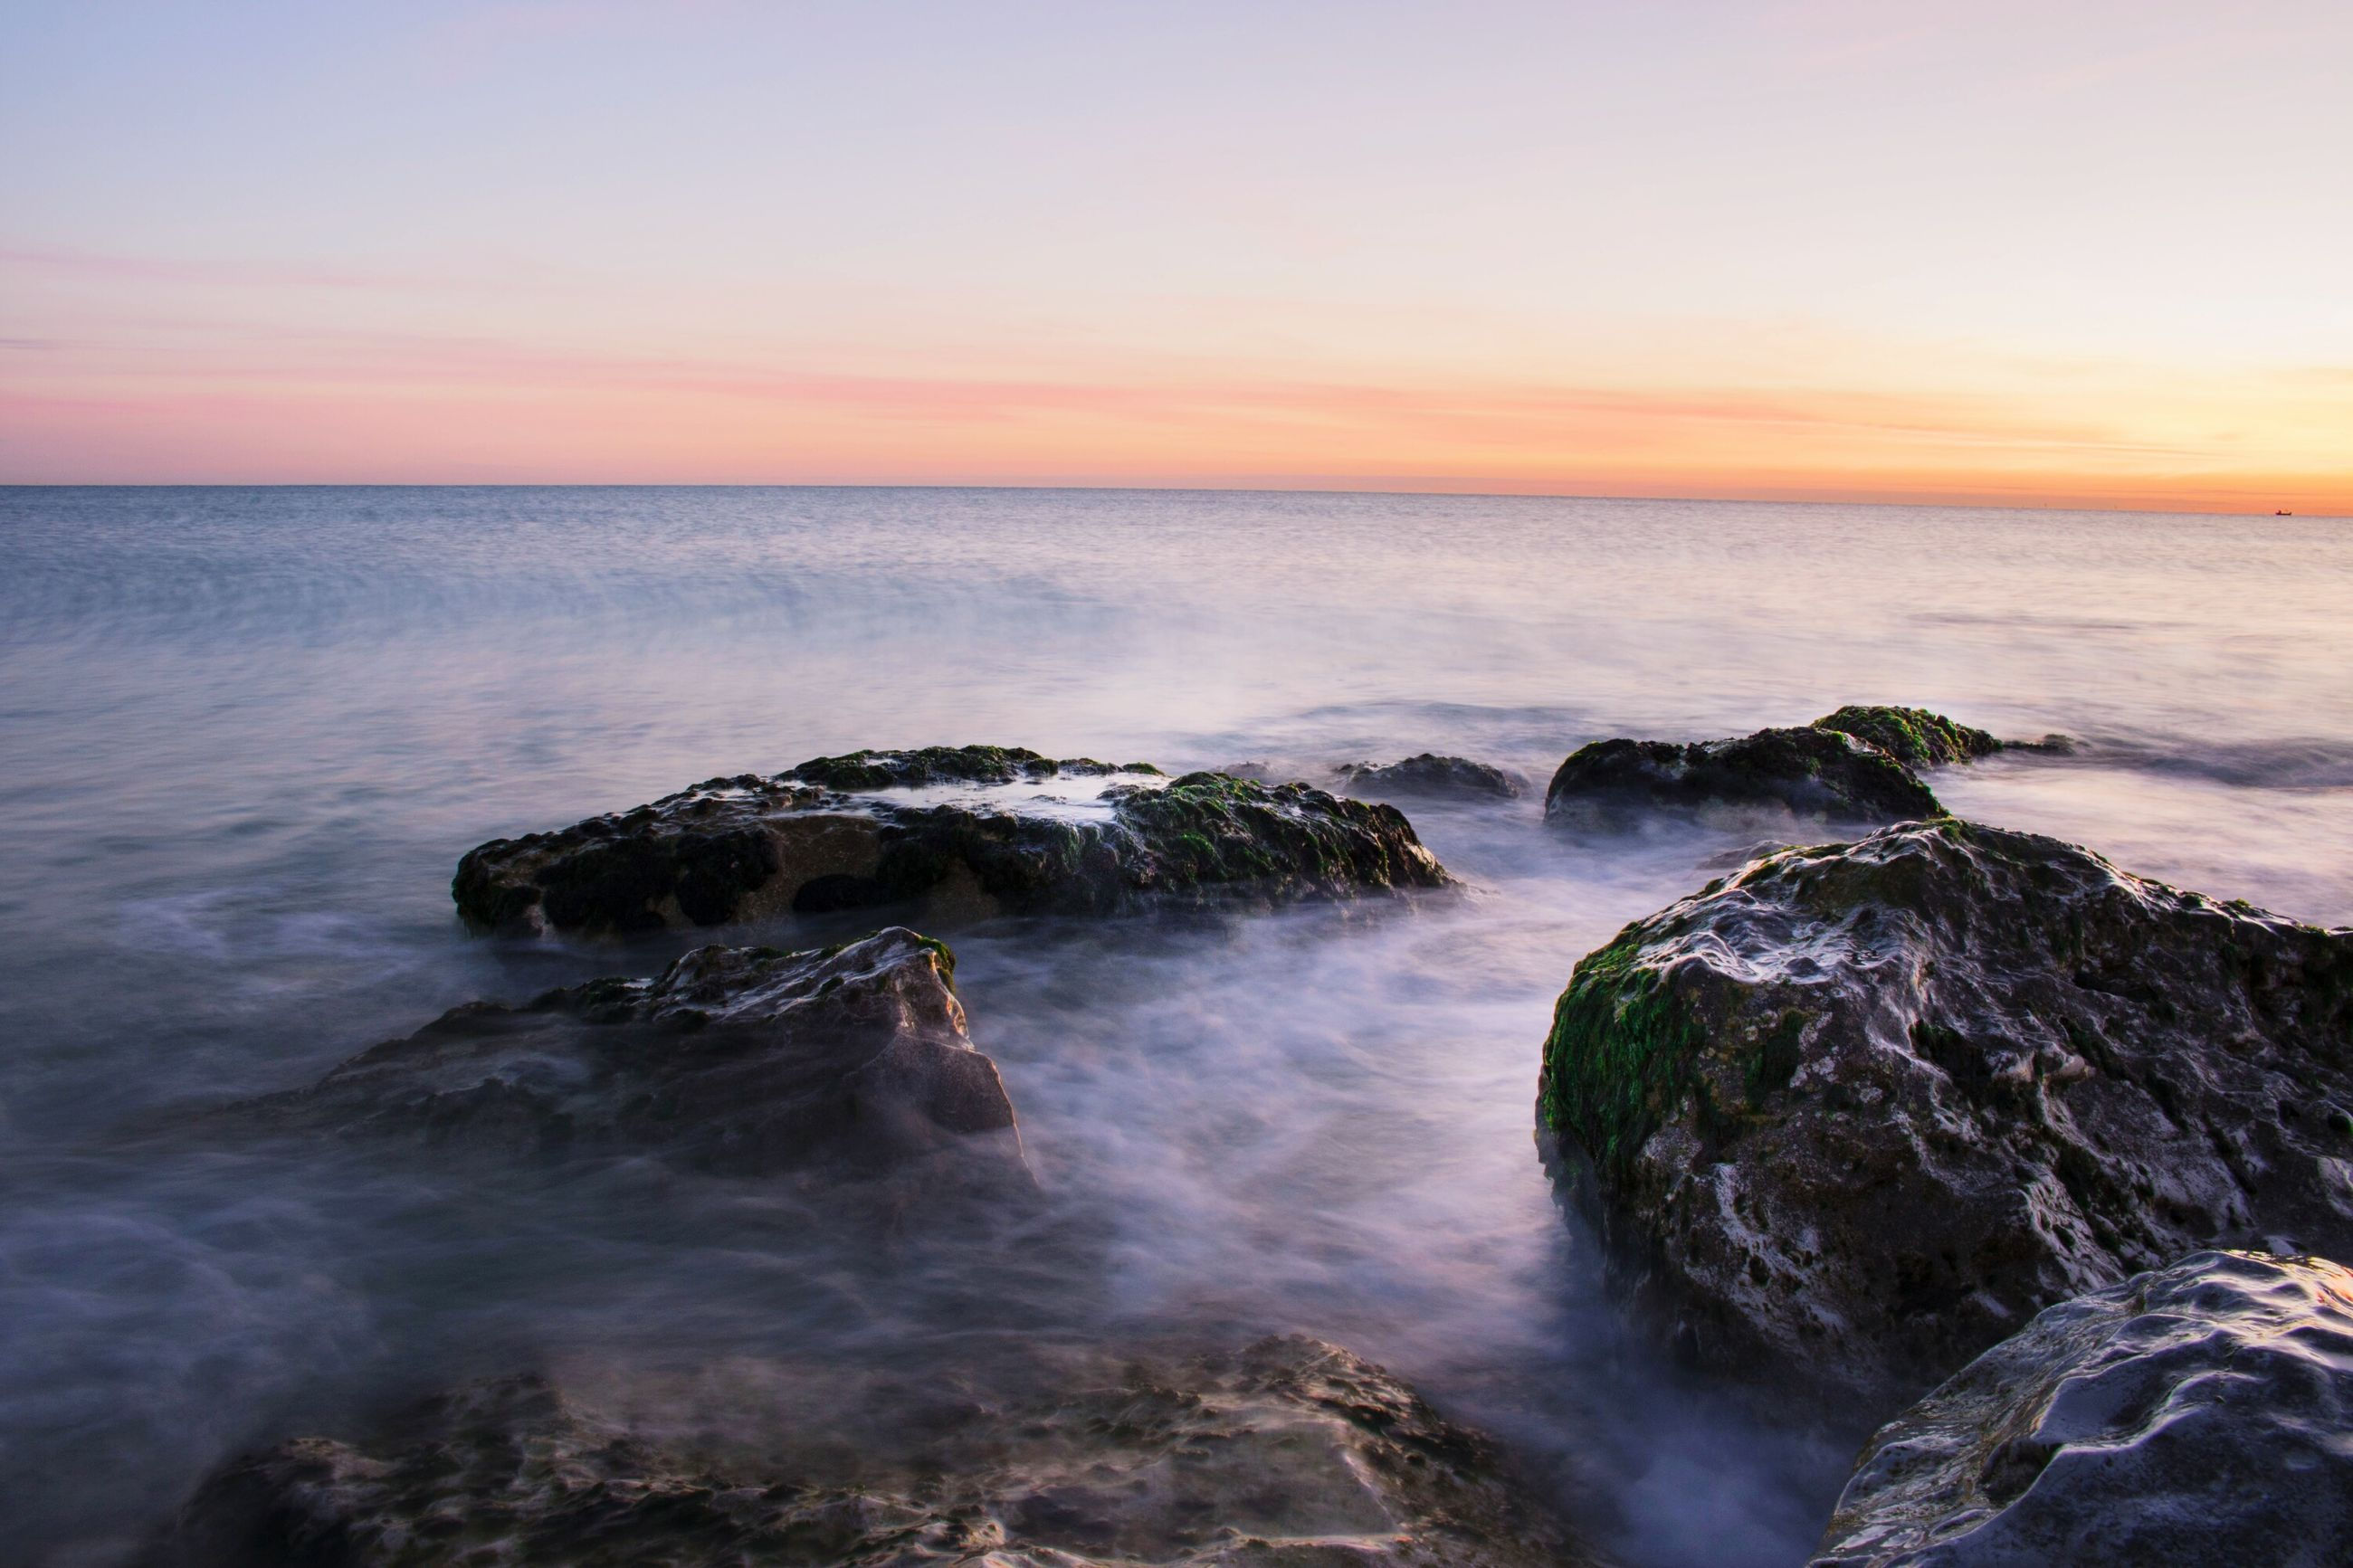 sea, sunset, scenics, water, horizon over water, beauty in nature, tranquil scene, idyllic, rock - object, tranquility, sky, nature, orange color, seascape, majestic, remote, dramatic sky, travel destinations, non-urban scene, vacations, wave, rock formation, tourism, calm, dawn, outdoors, atmospheric mood, geology, ocean, no people, cliff